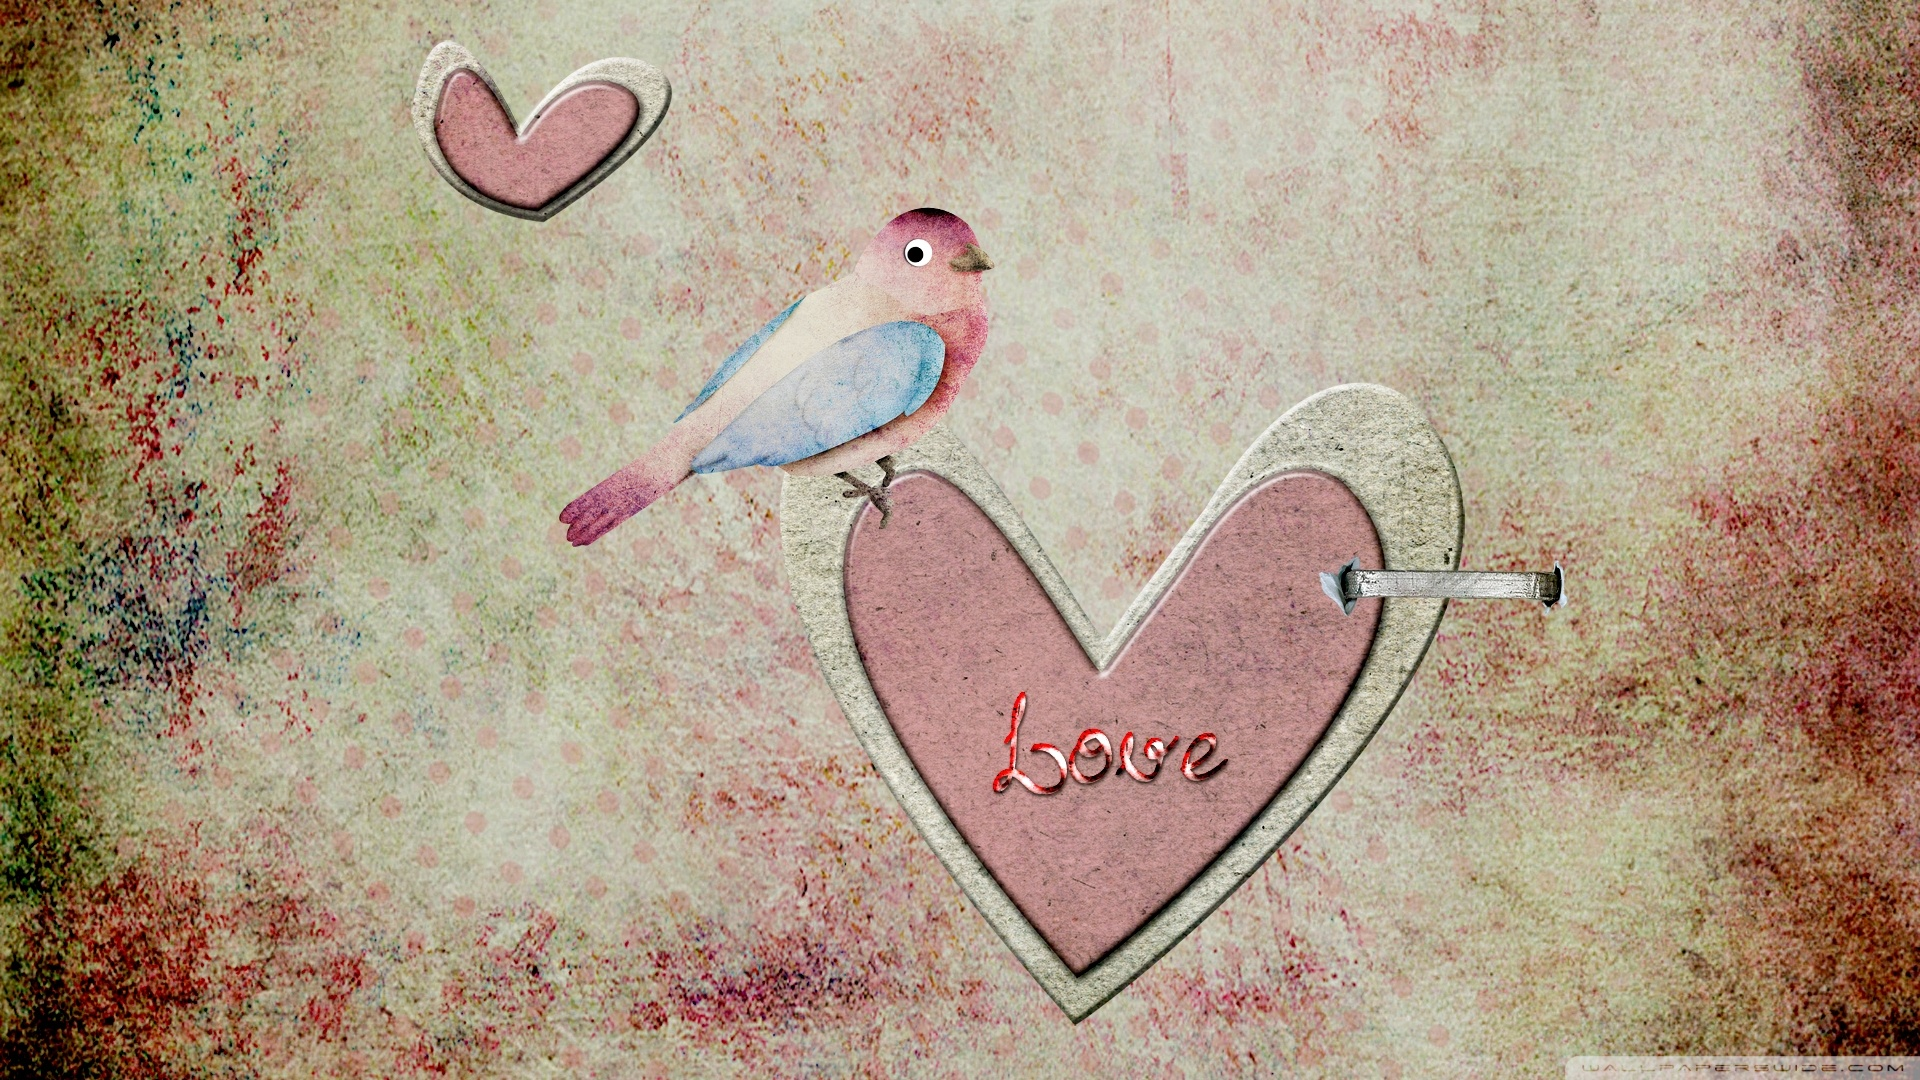 Wallpaper I Love You Vintage : Vintage love art wallpaper 1920x1080 #28245